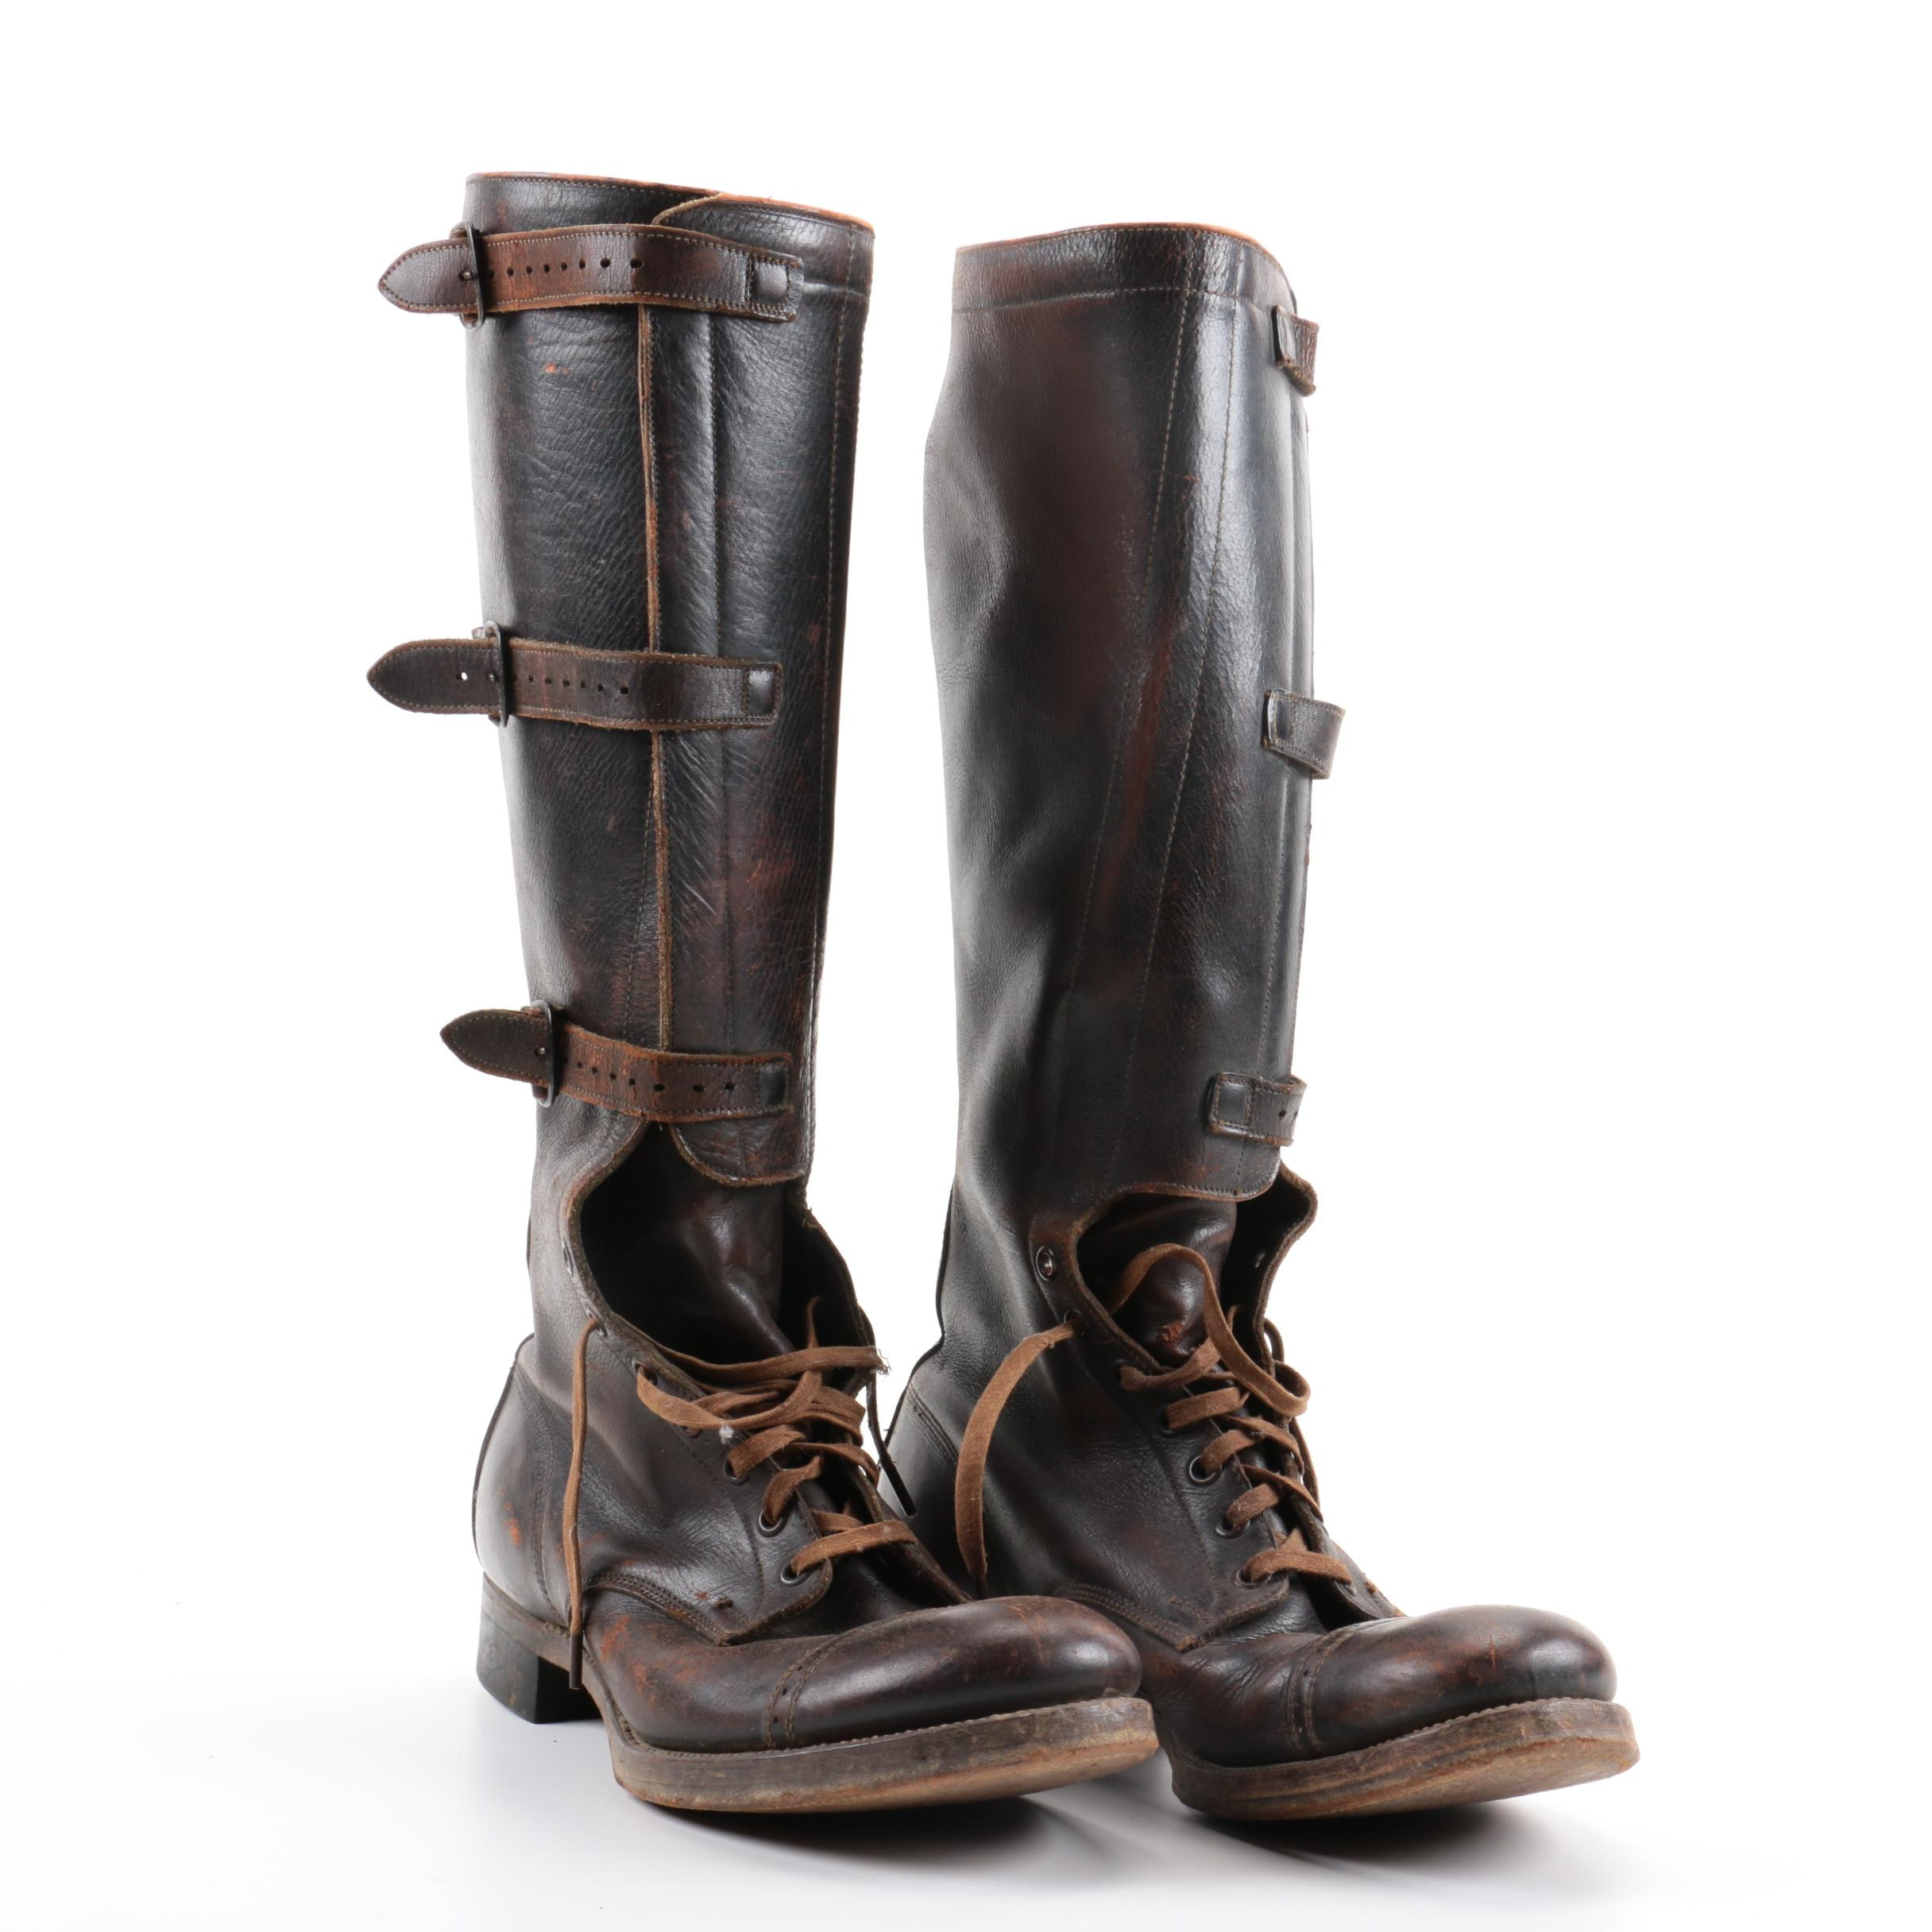 1946 International Shoe Co. Military Boots